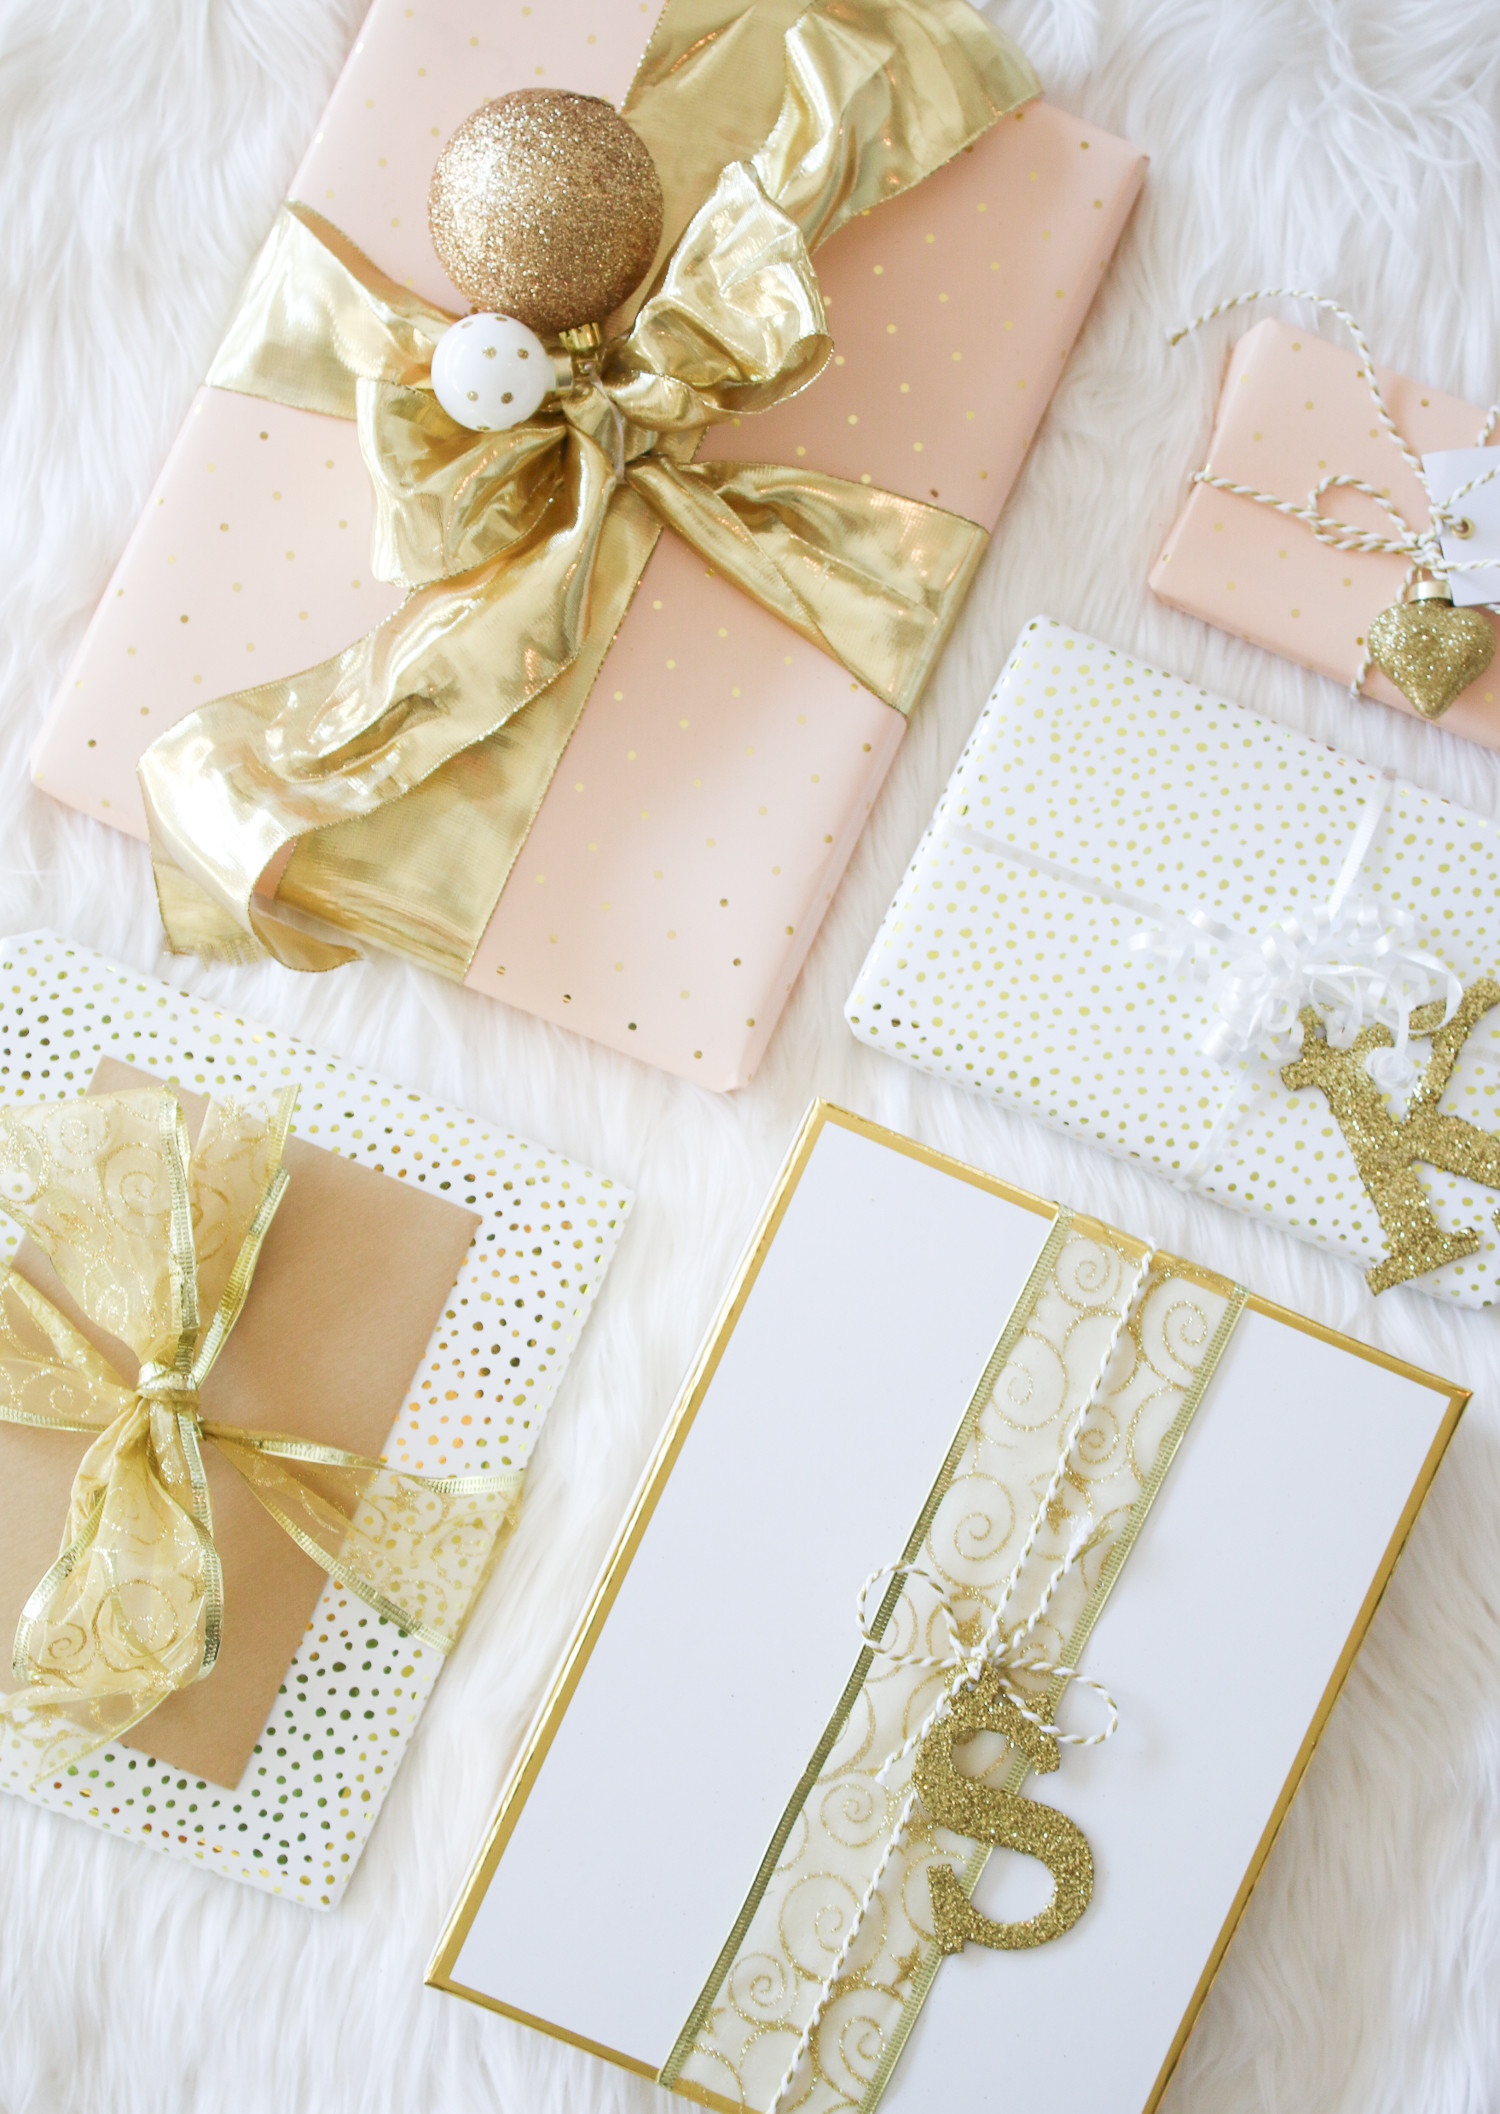 Best ideas about Christmas Gift Wrapping Ideas Elegant . Save or Pin Elegant Holiday Gift Wrap Ideas Now.